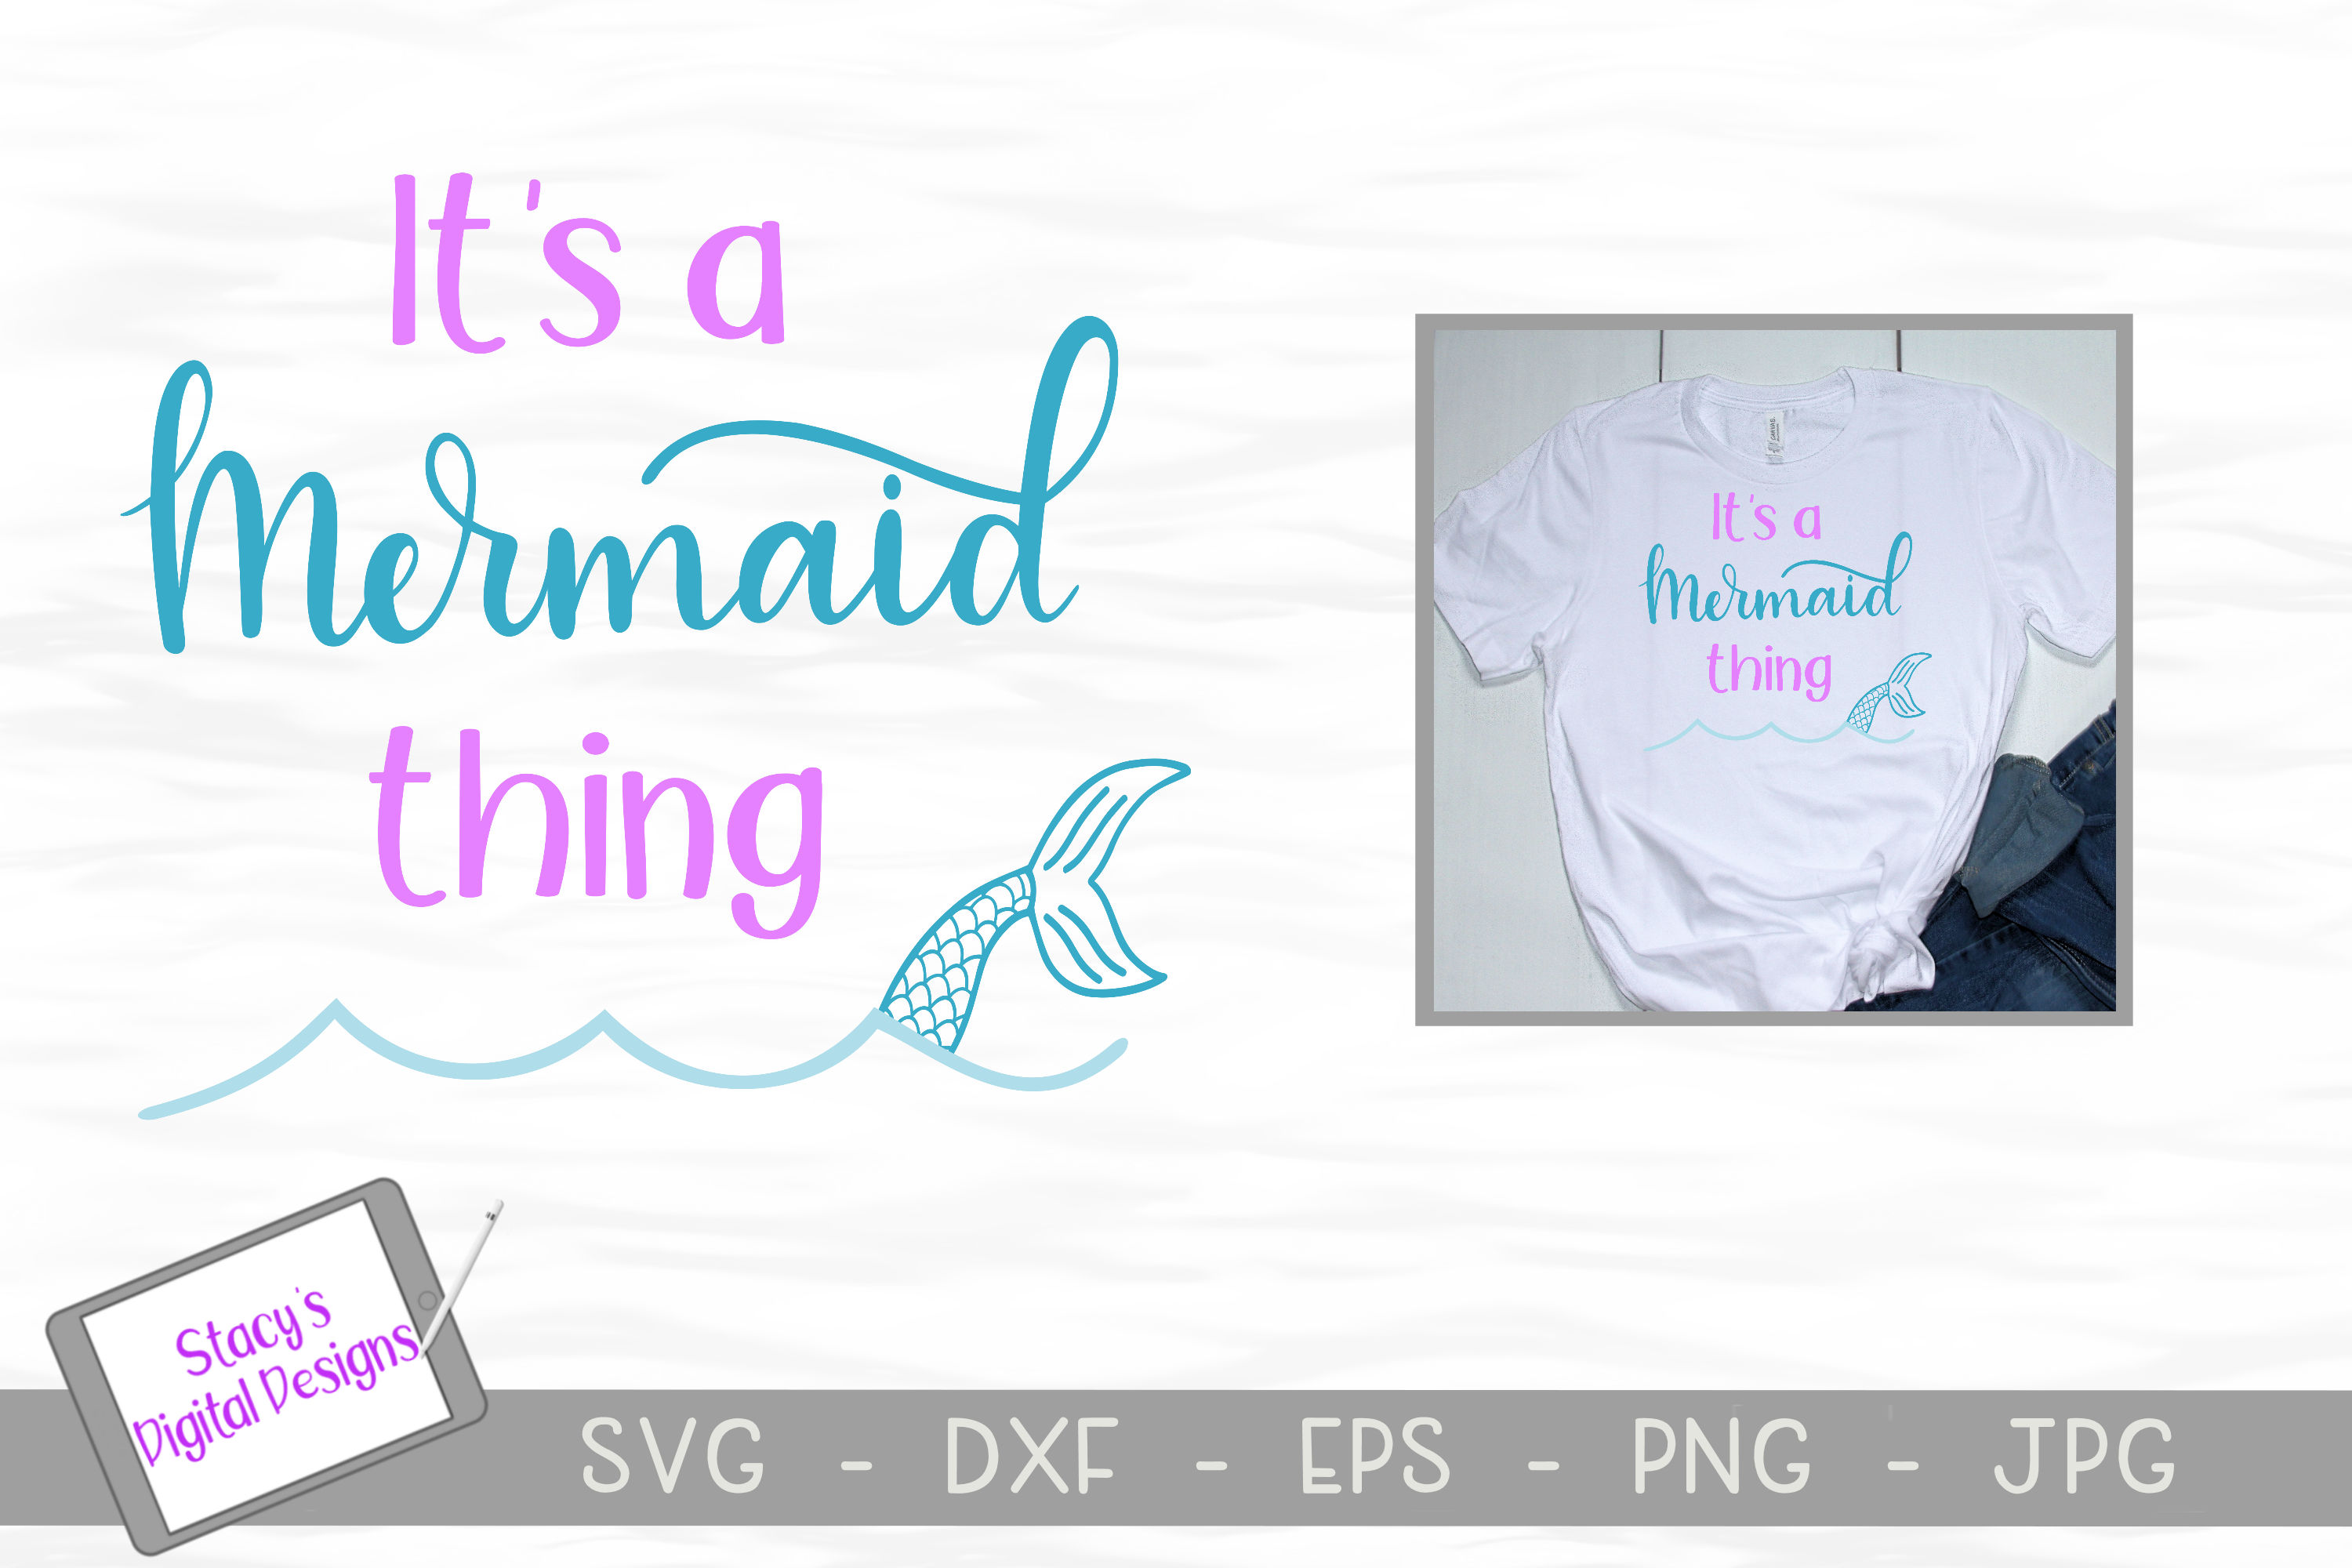 Download Free It S A Mermaid Thing Design Graphic By Stacysdigitaldesigns for Cricut Explore, Silhouette and other cutting machines.